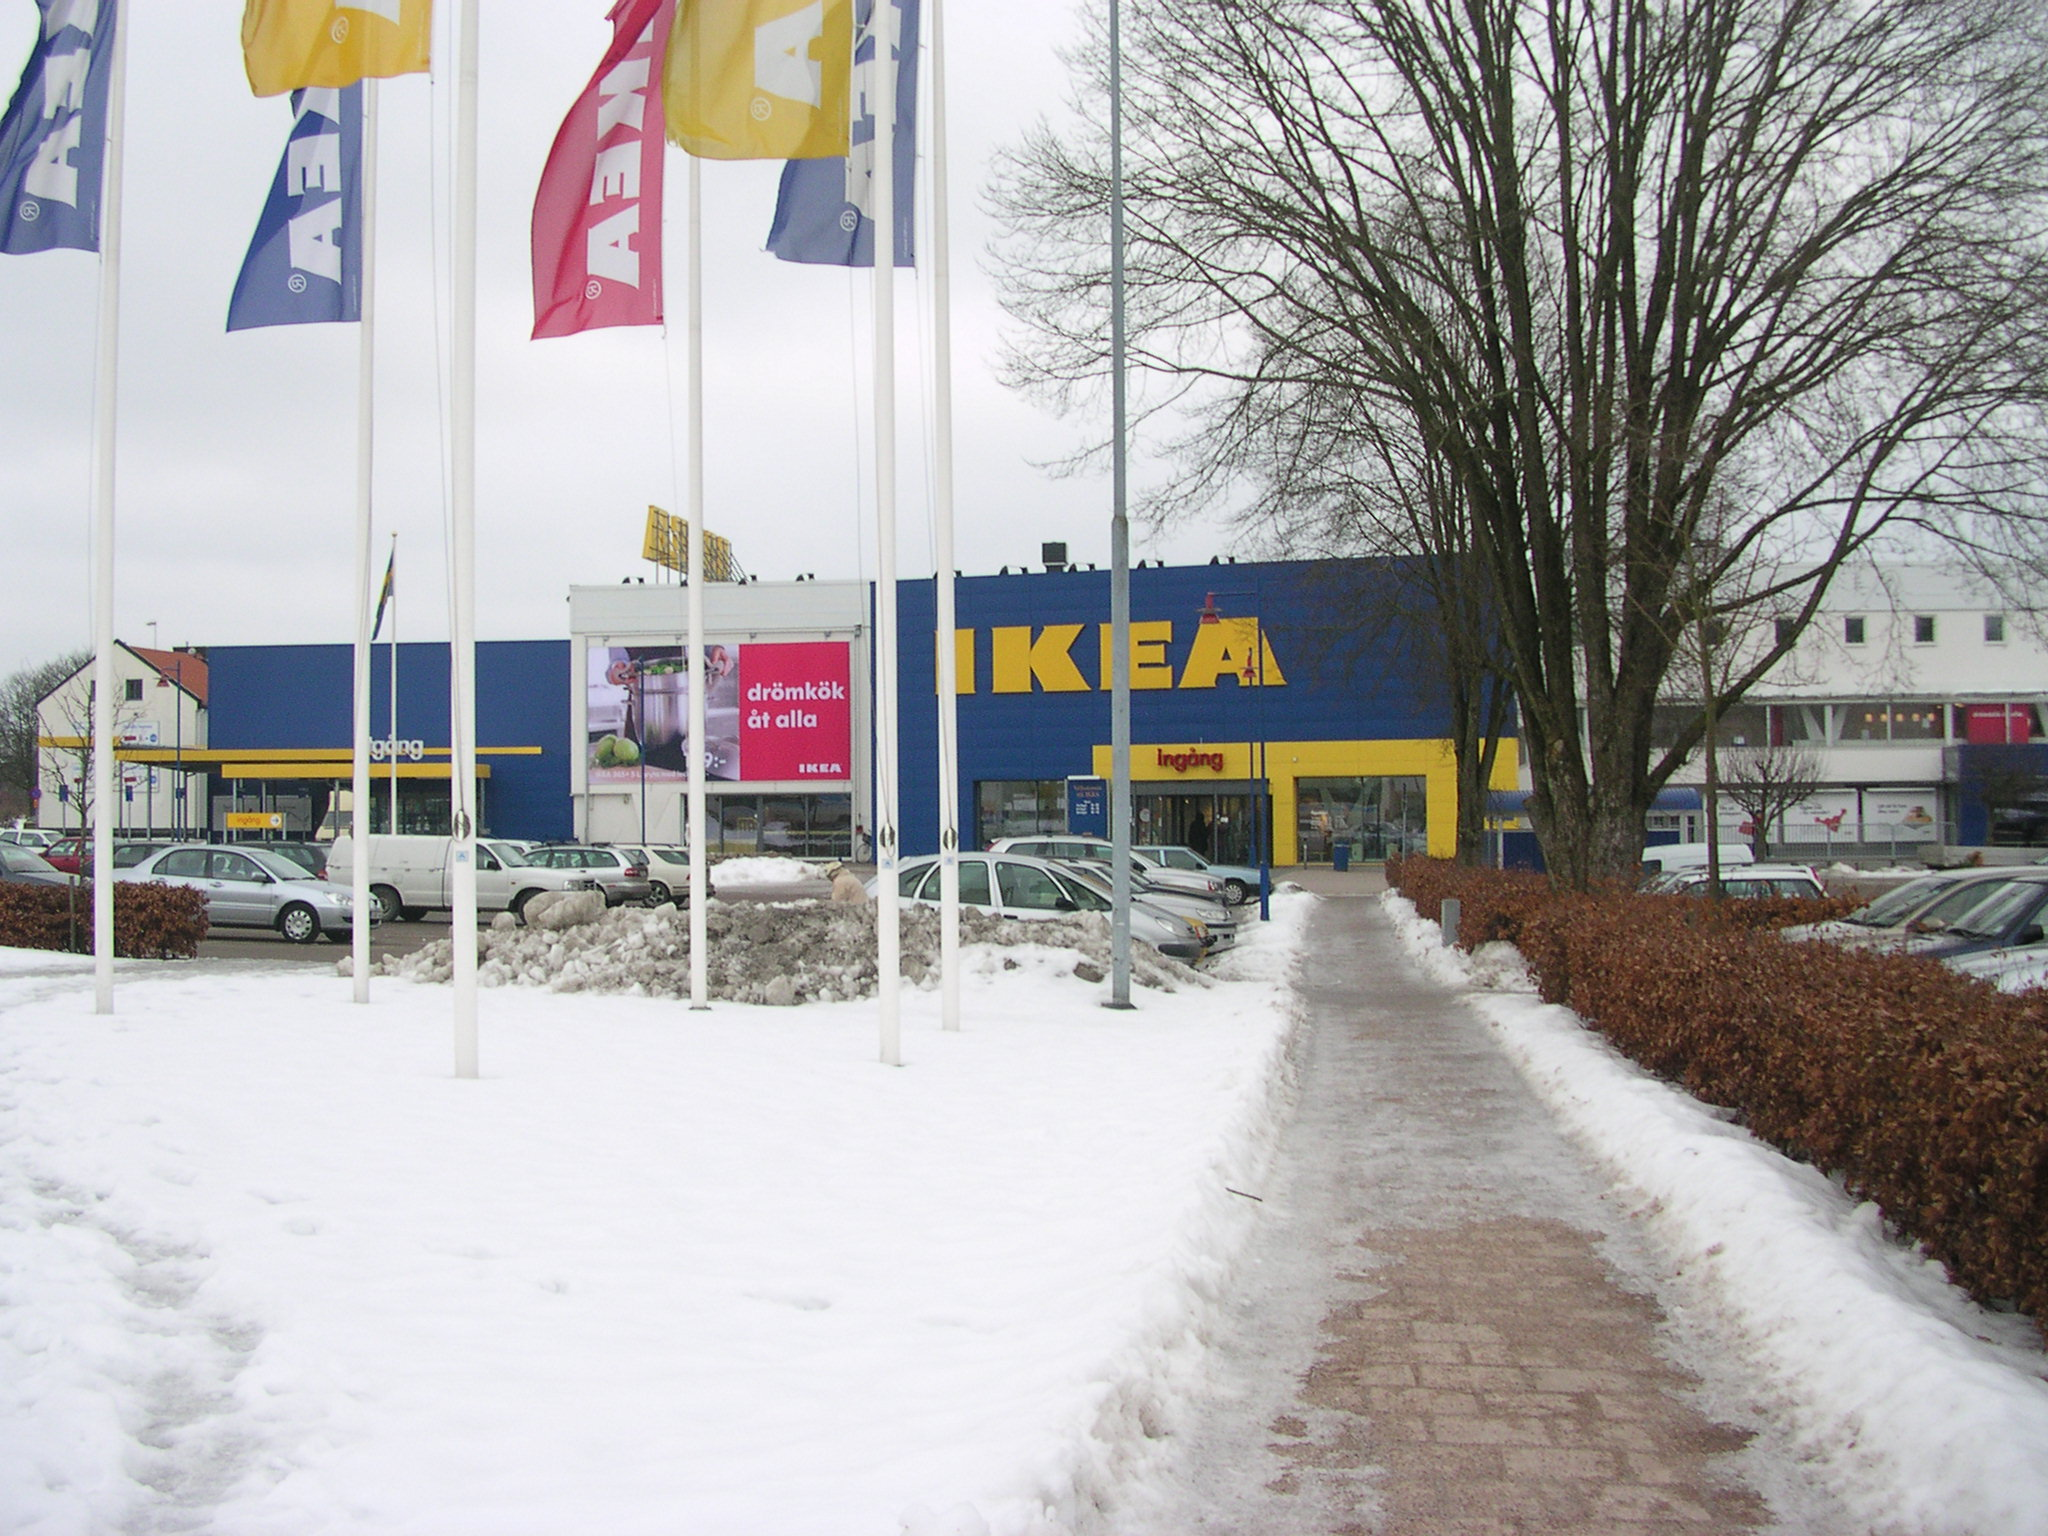 file ikea in lmhult wikimedia commons. Black Bedroom Furniture Sets. Home Design Ideas